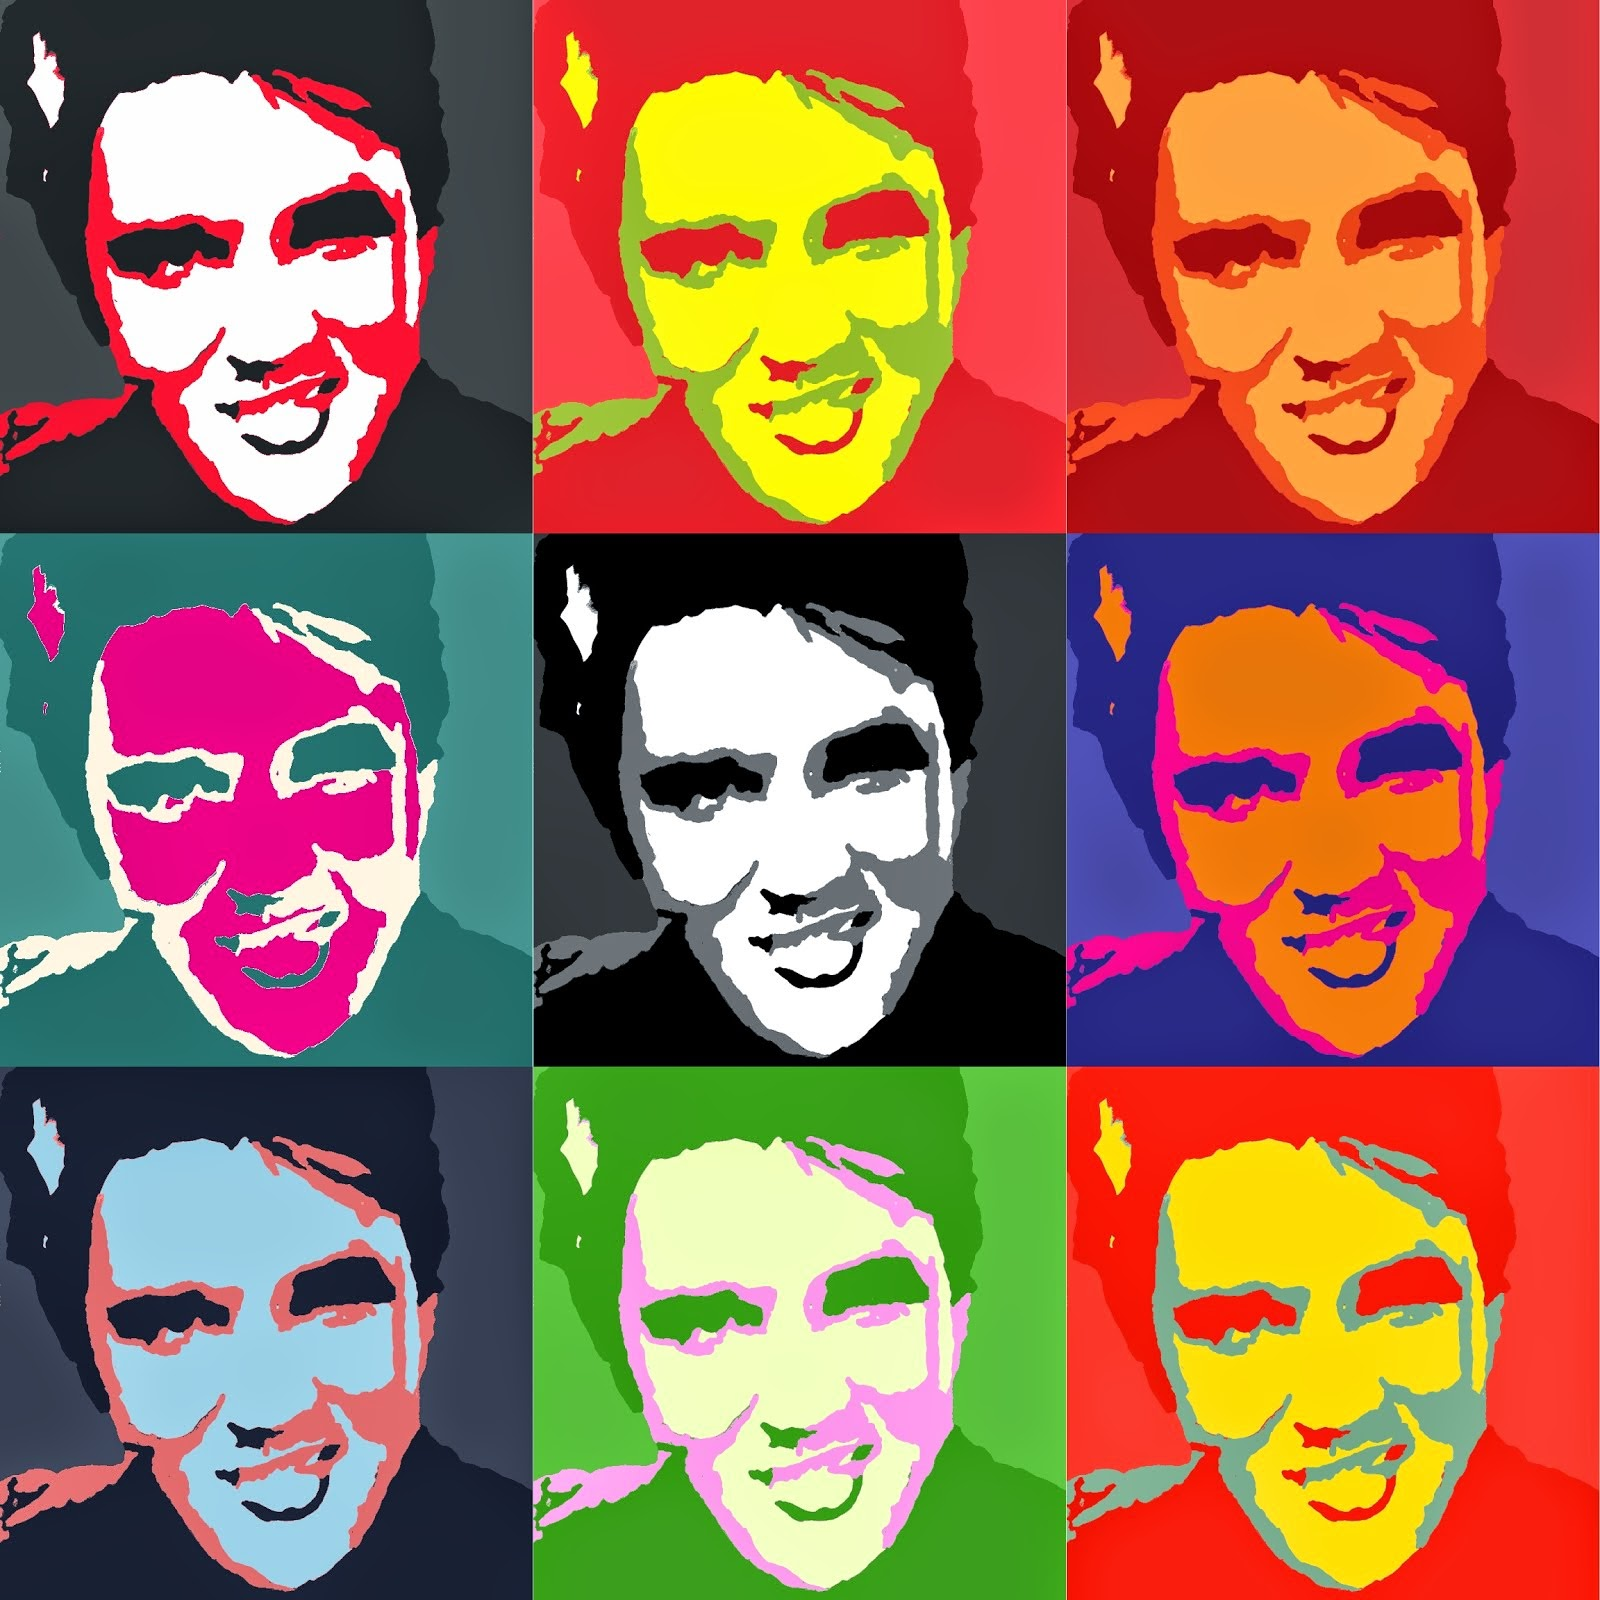 Elvis paintings